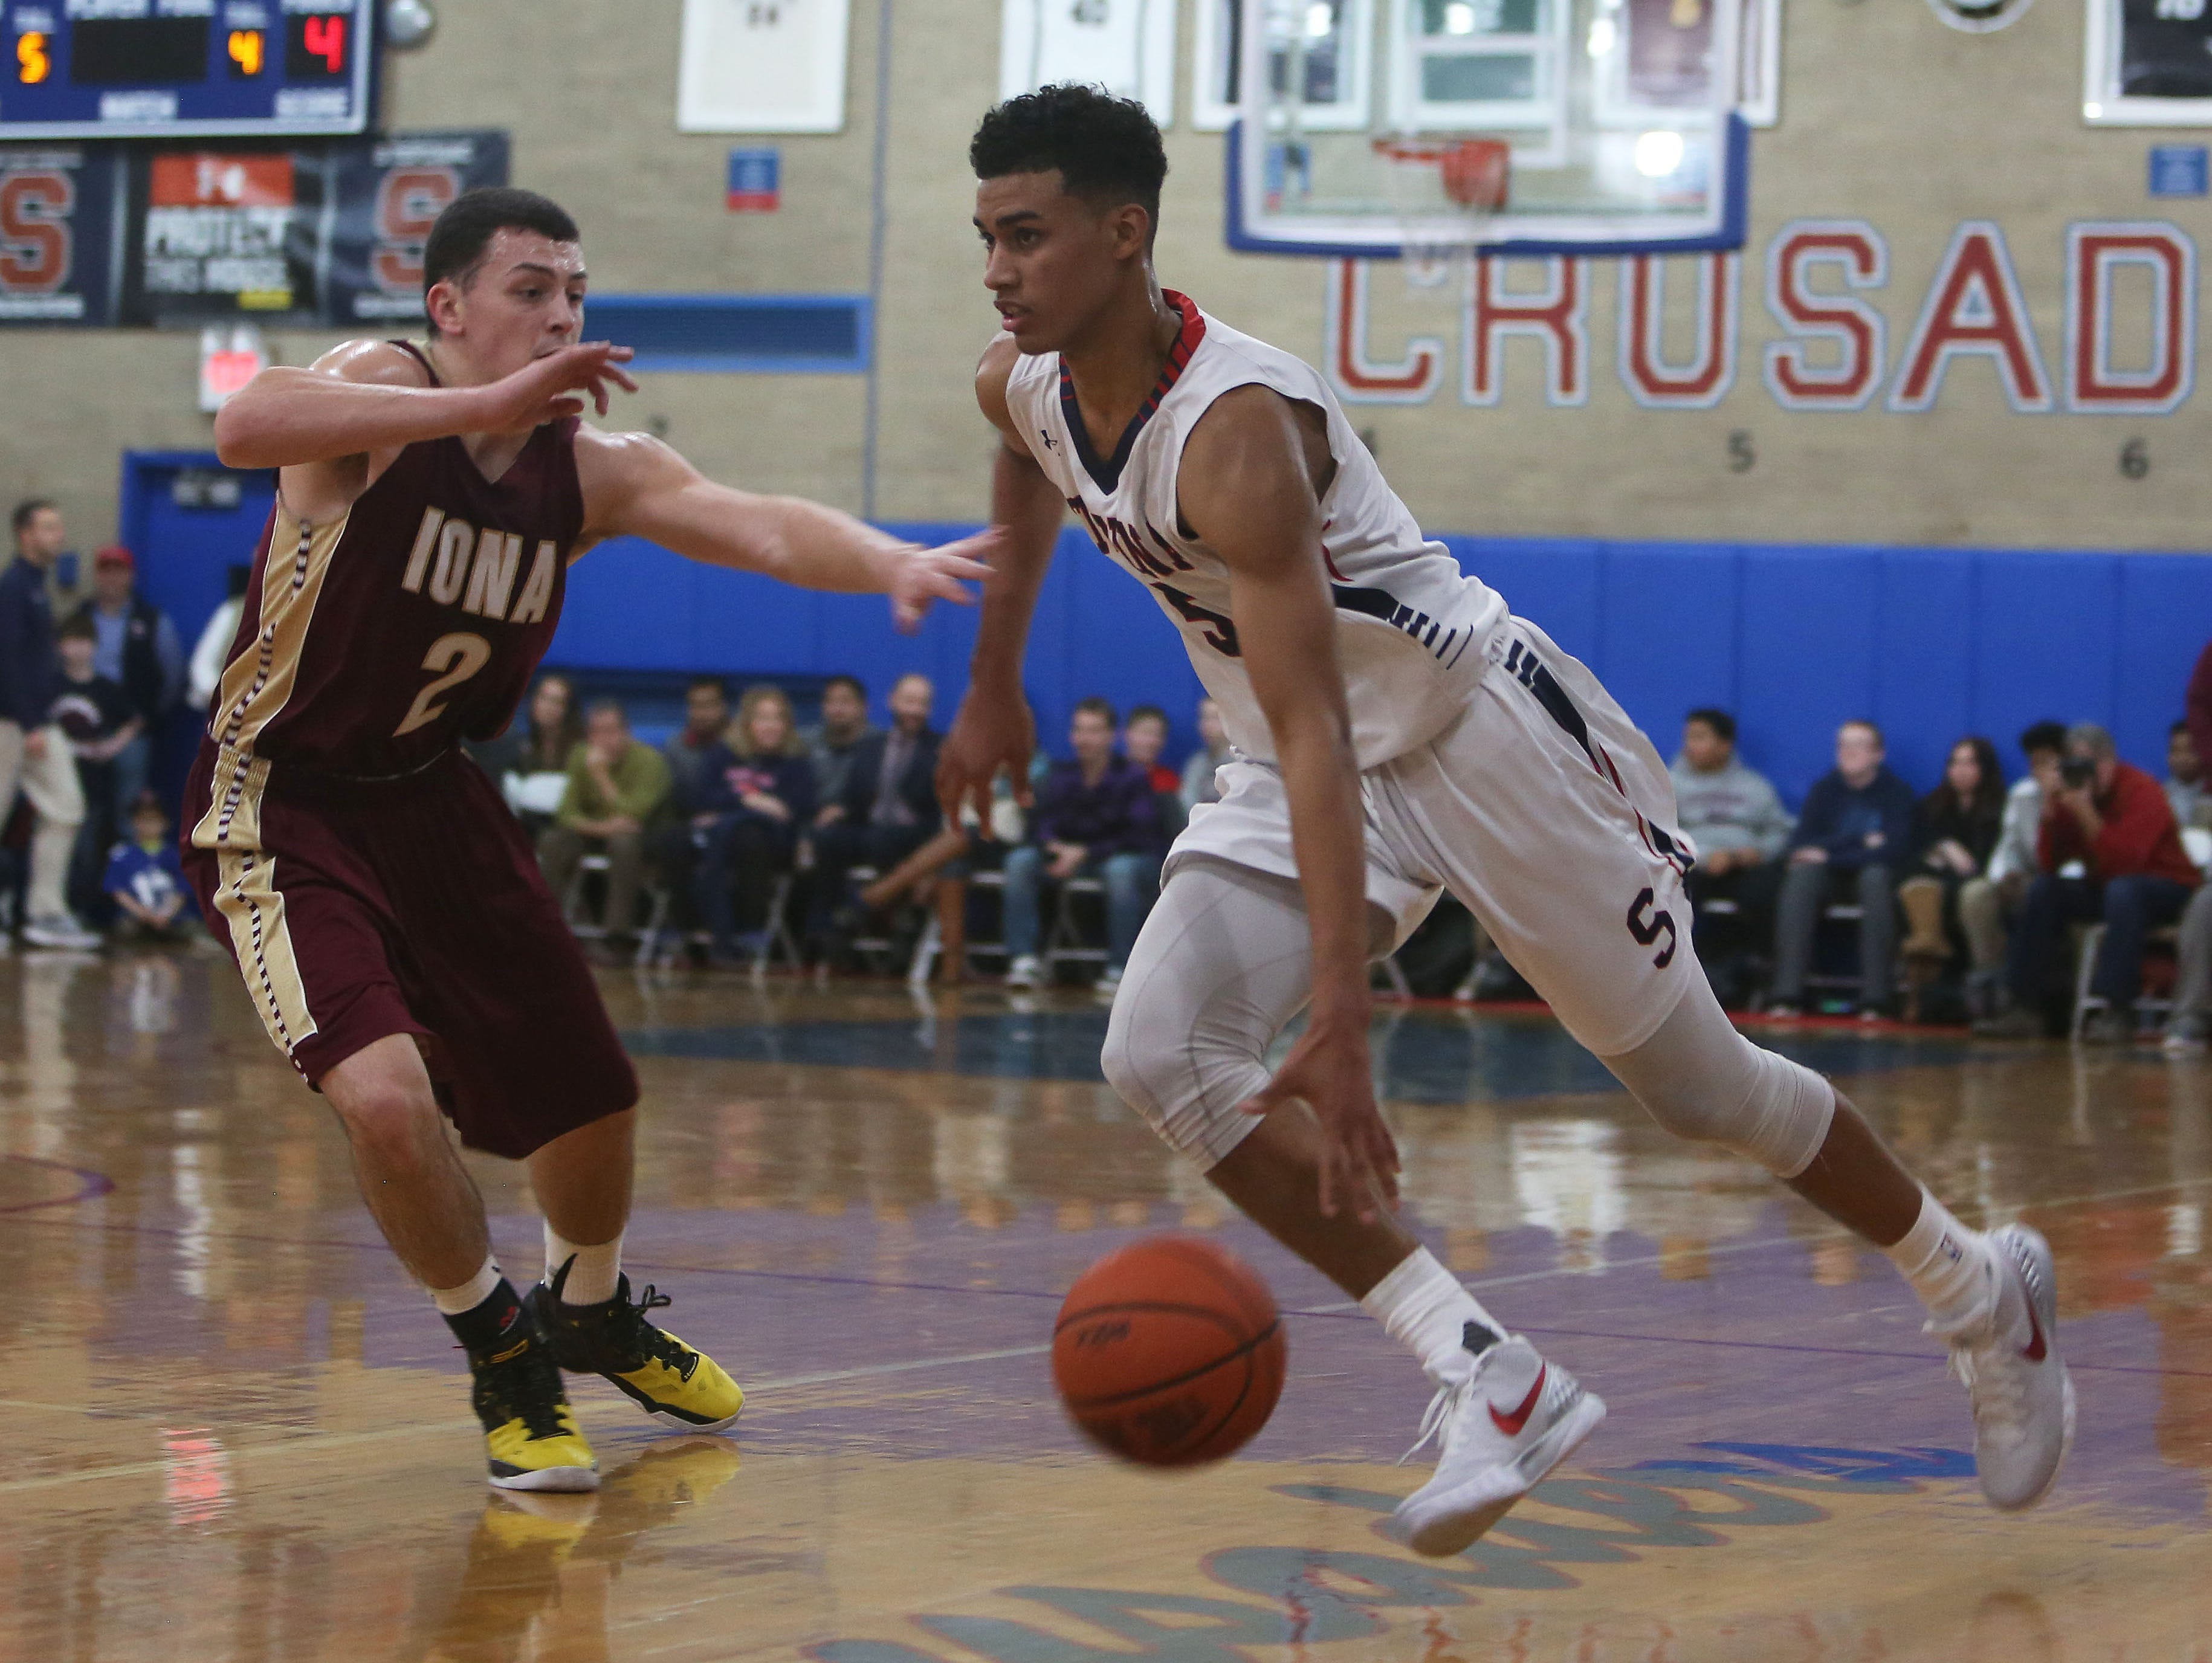 Stepinac's Jordan Tucker (5) drives to the basket while covered by Iona's Jon Brennen (2) during boys basketball action at Archbishop Stepinac High School in White Plains Jan. 8, 2016.